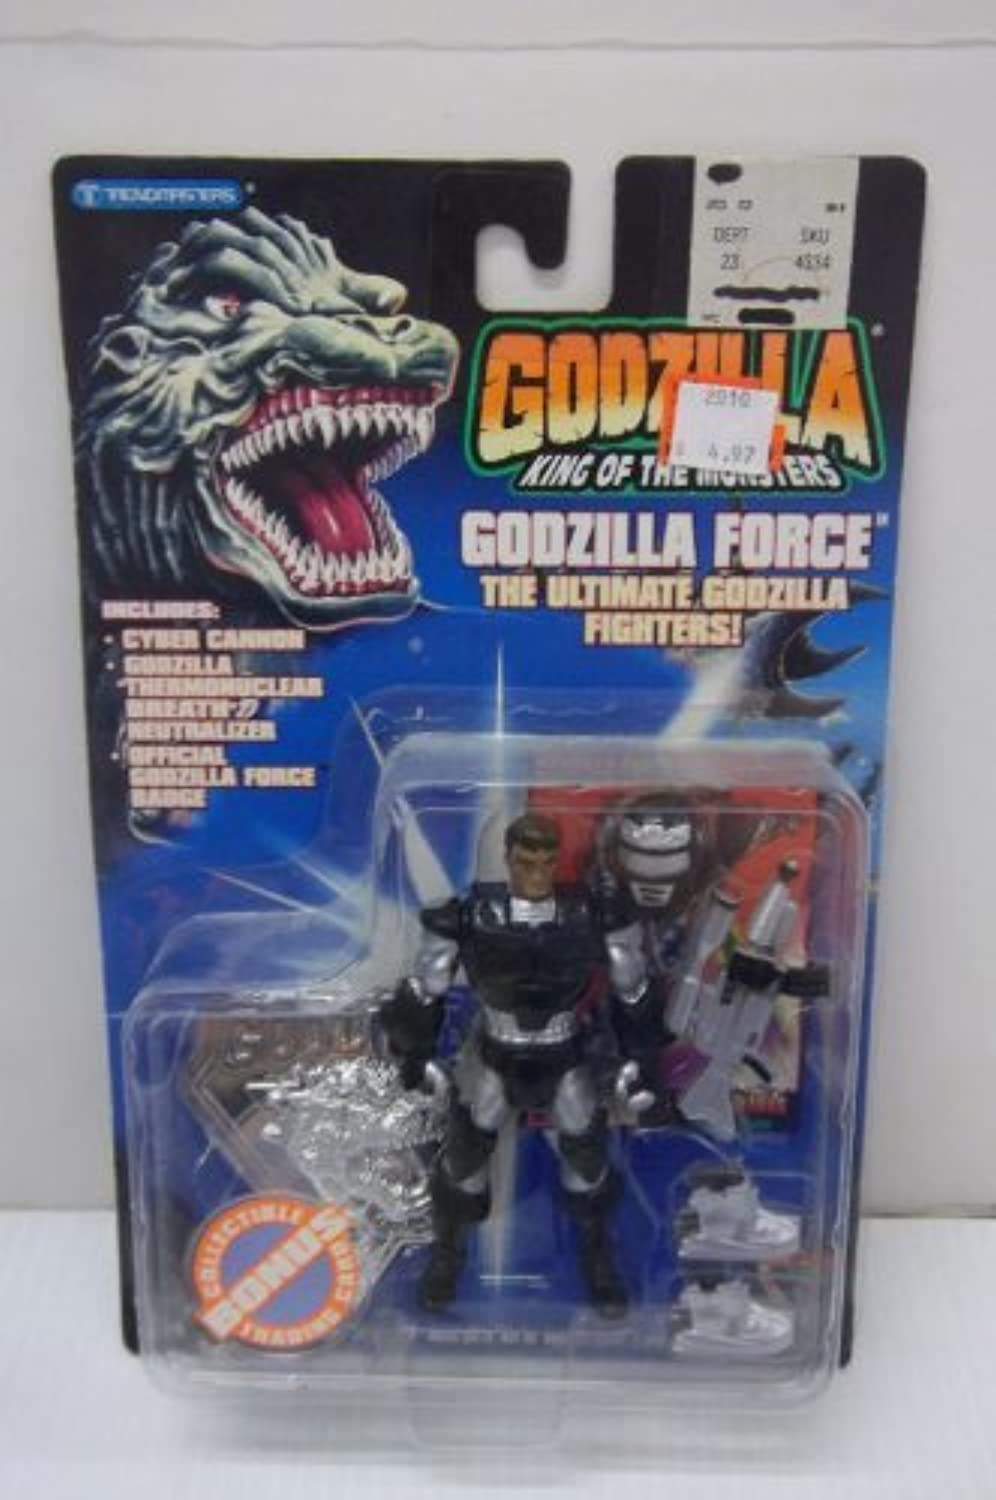 Godzilla Force Pete Richards Action Figure Fleet Leader by Trendmasters